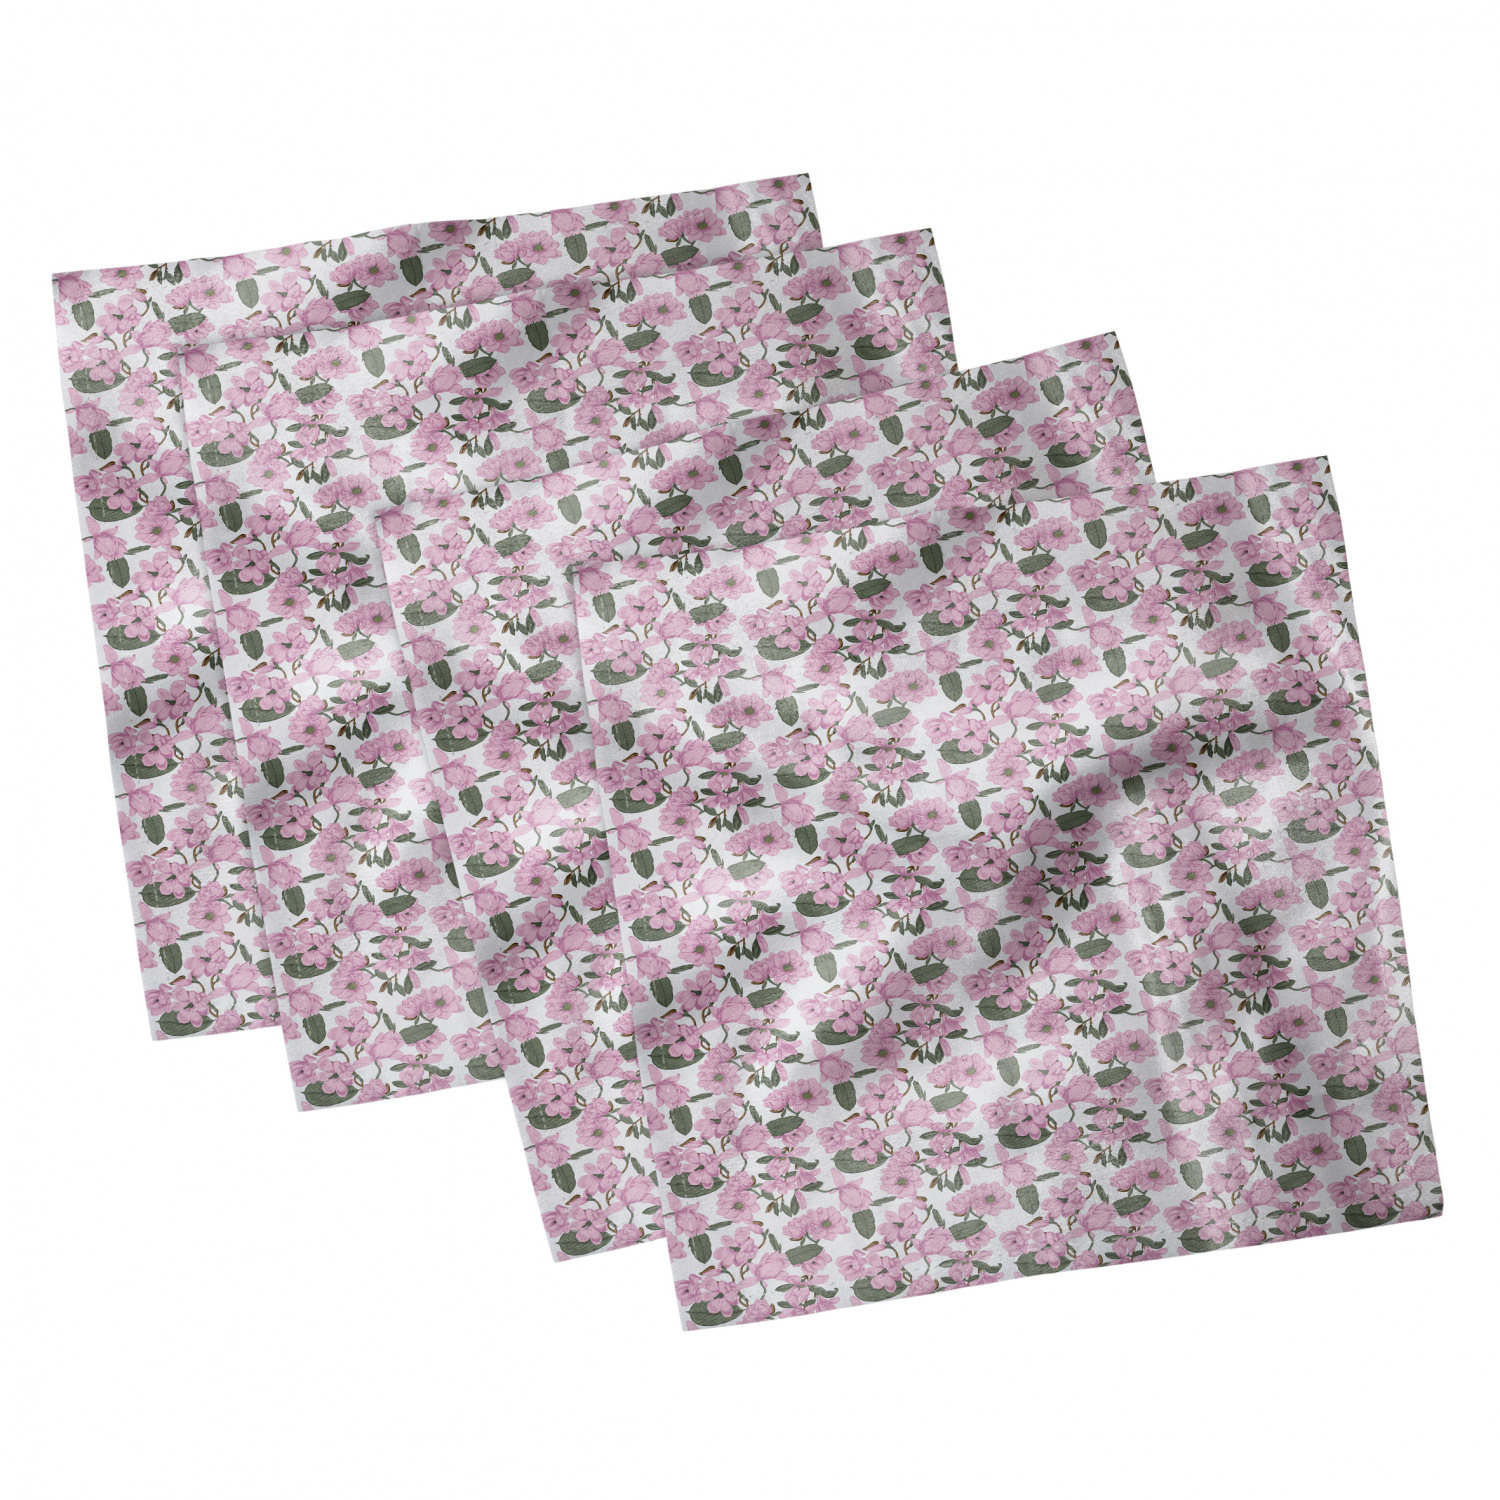 thumbnail 65 - Ambesonne-Leaves-Forest-Decorative-Satin-Napkins-Set-of-4-Party-Dinner-Fabric